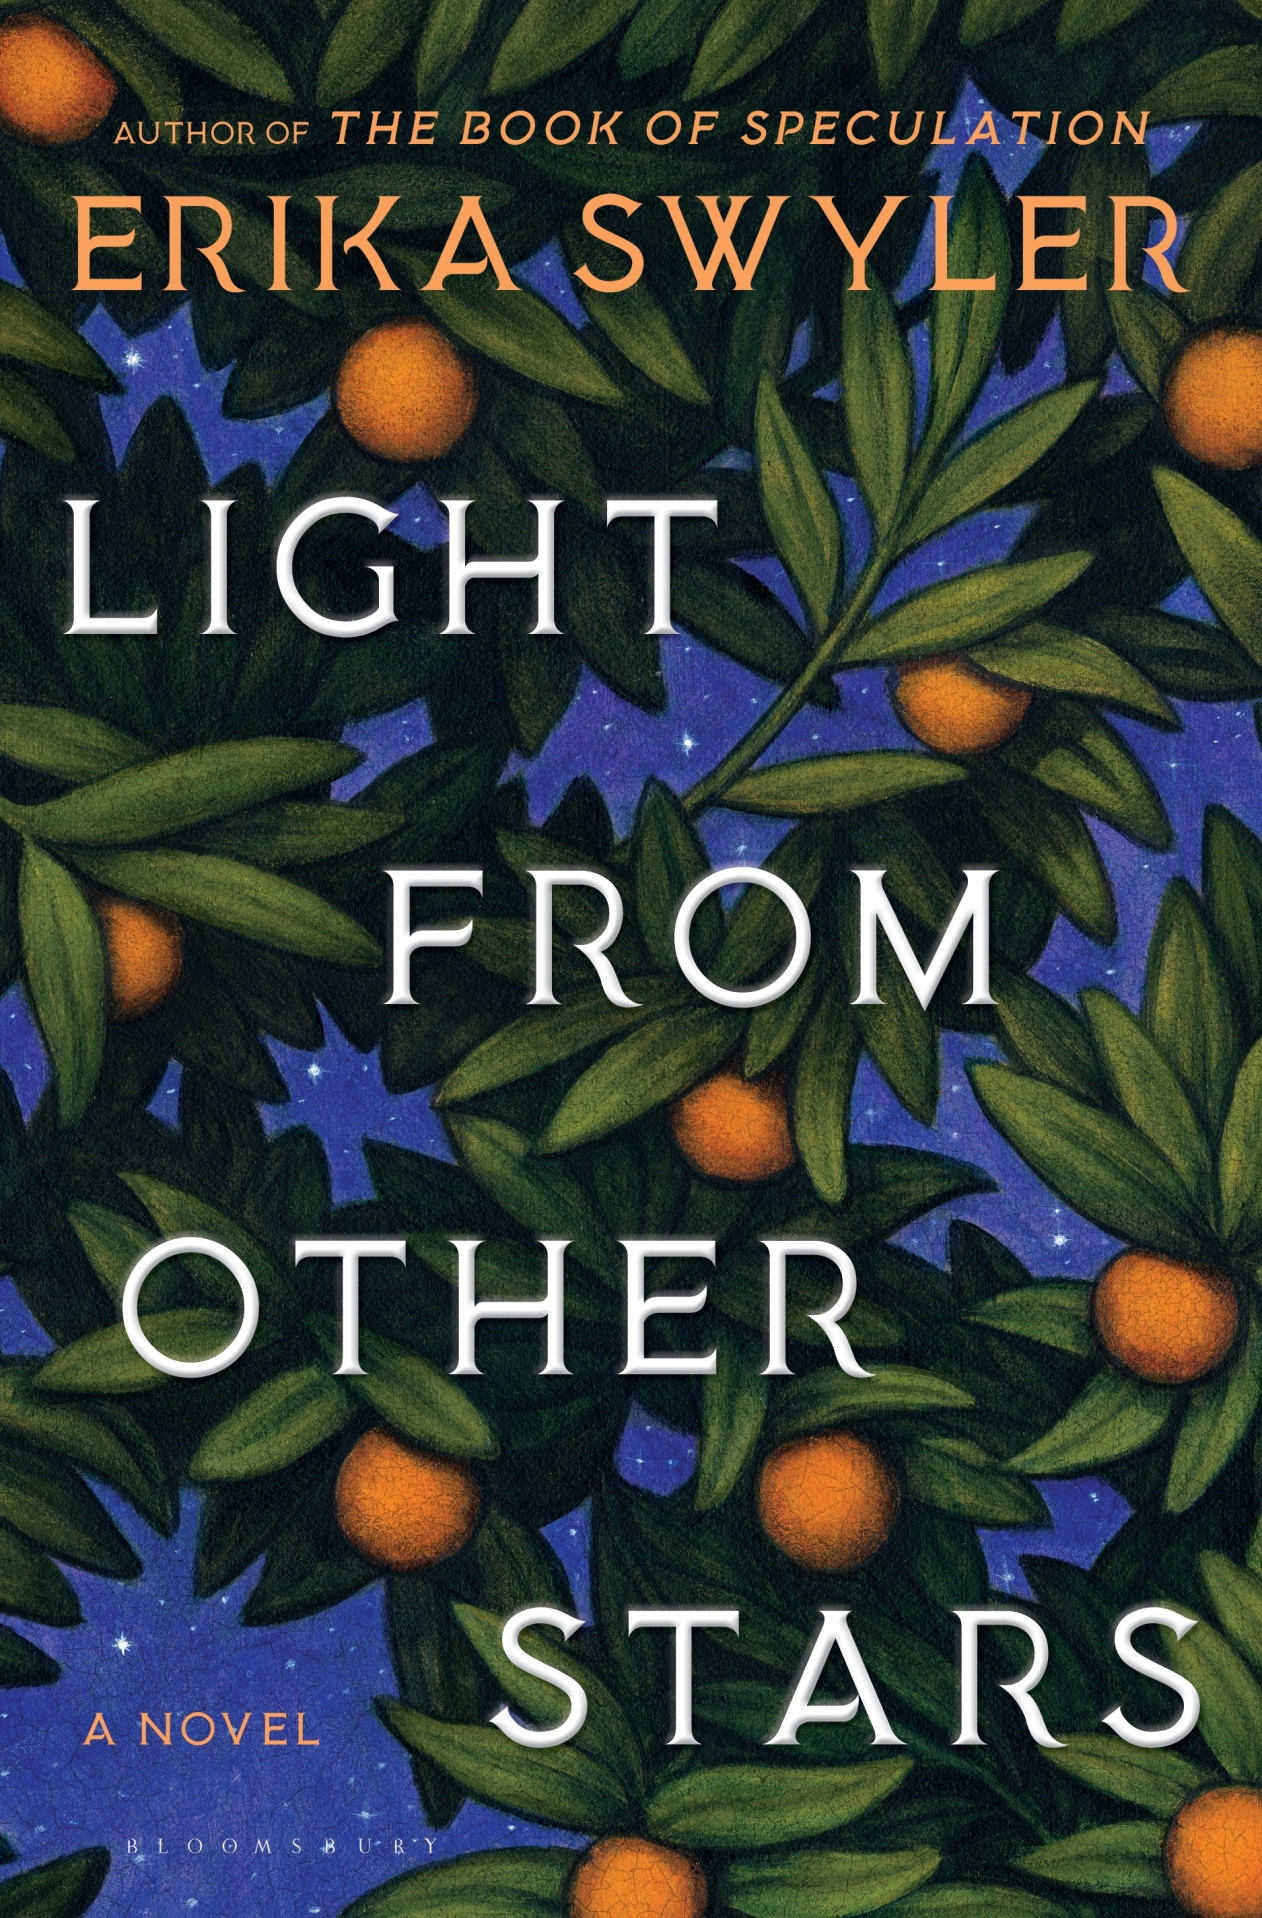 Light from Other Stars_ cover image_high res.jpg